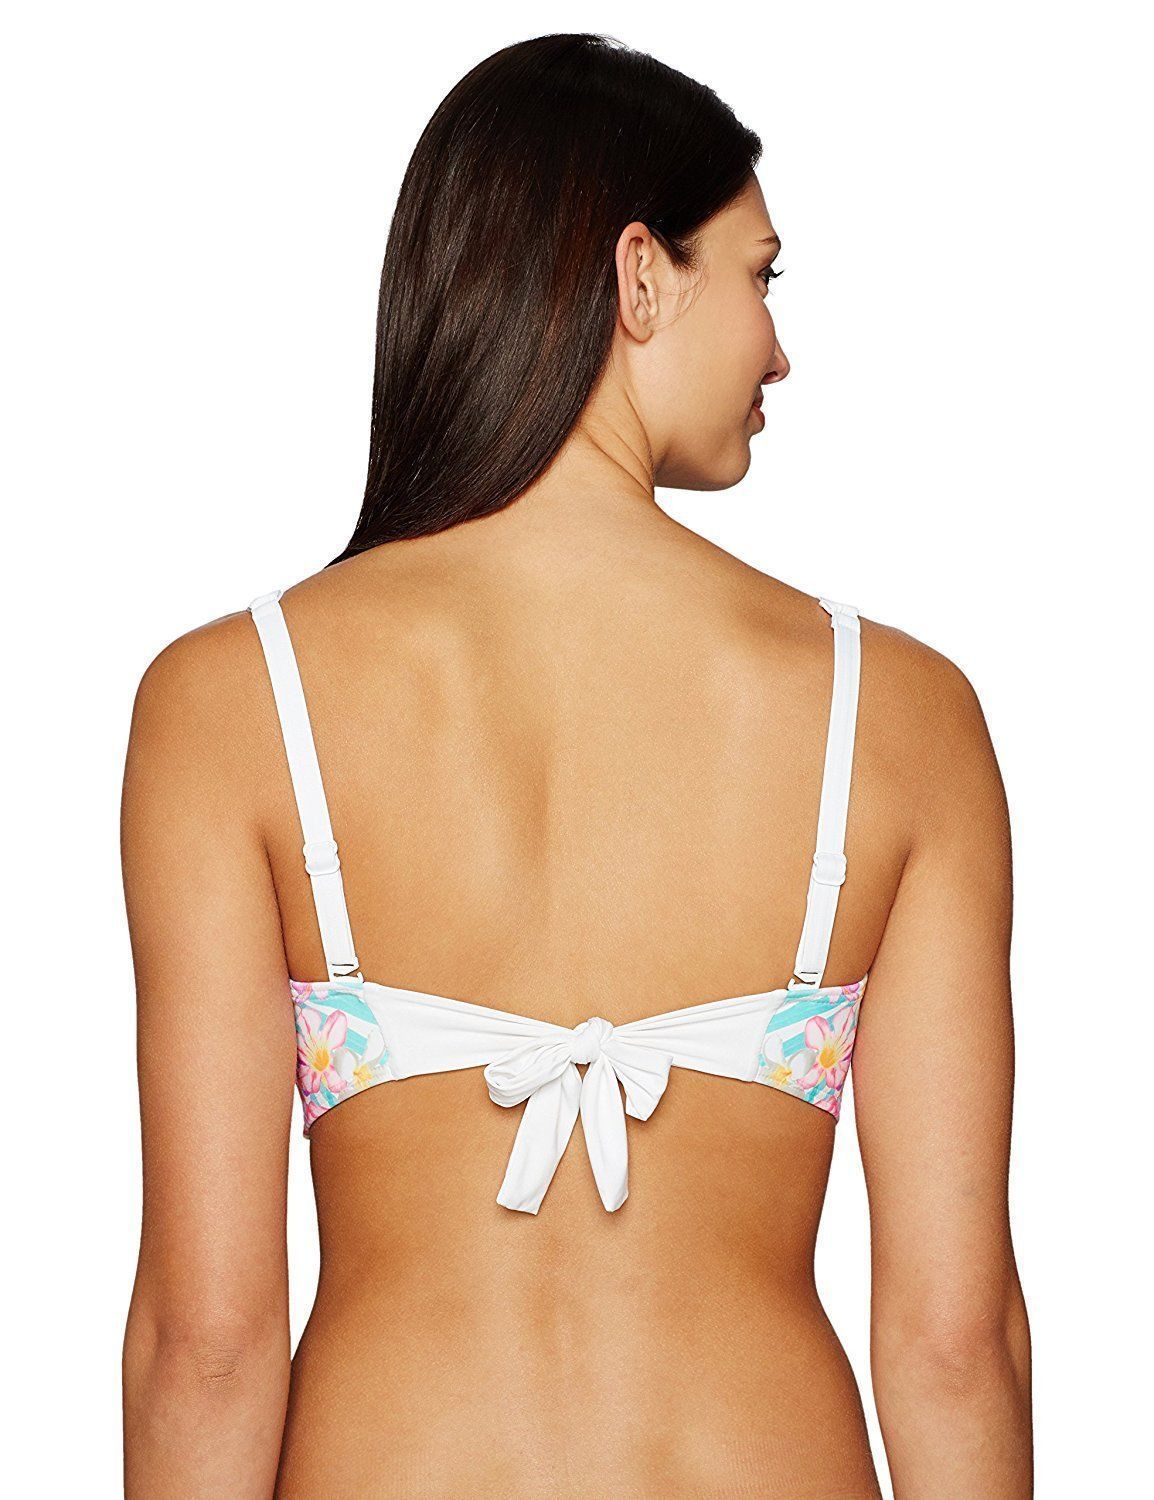 NEW Coco Reef Tropical Escape Convertible Five Way Bikini Swimwear Top 32/34 C